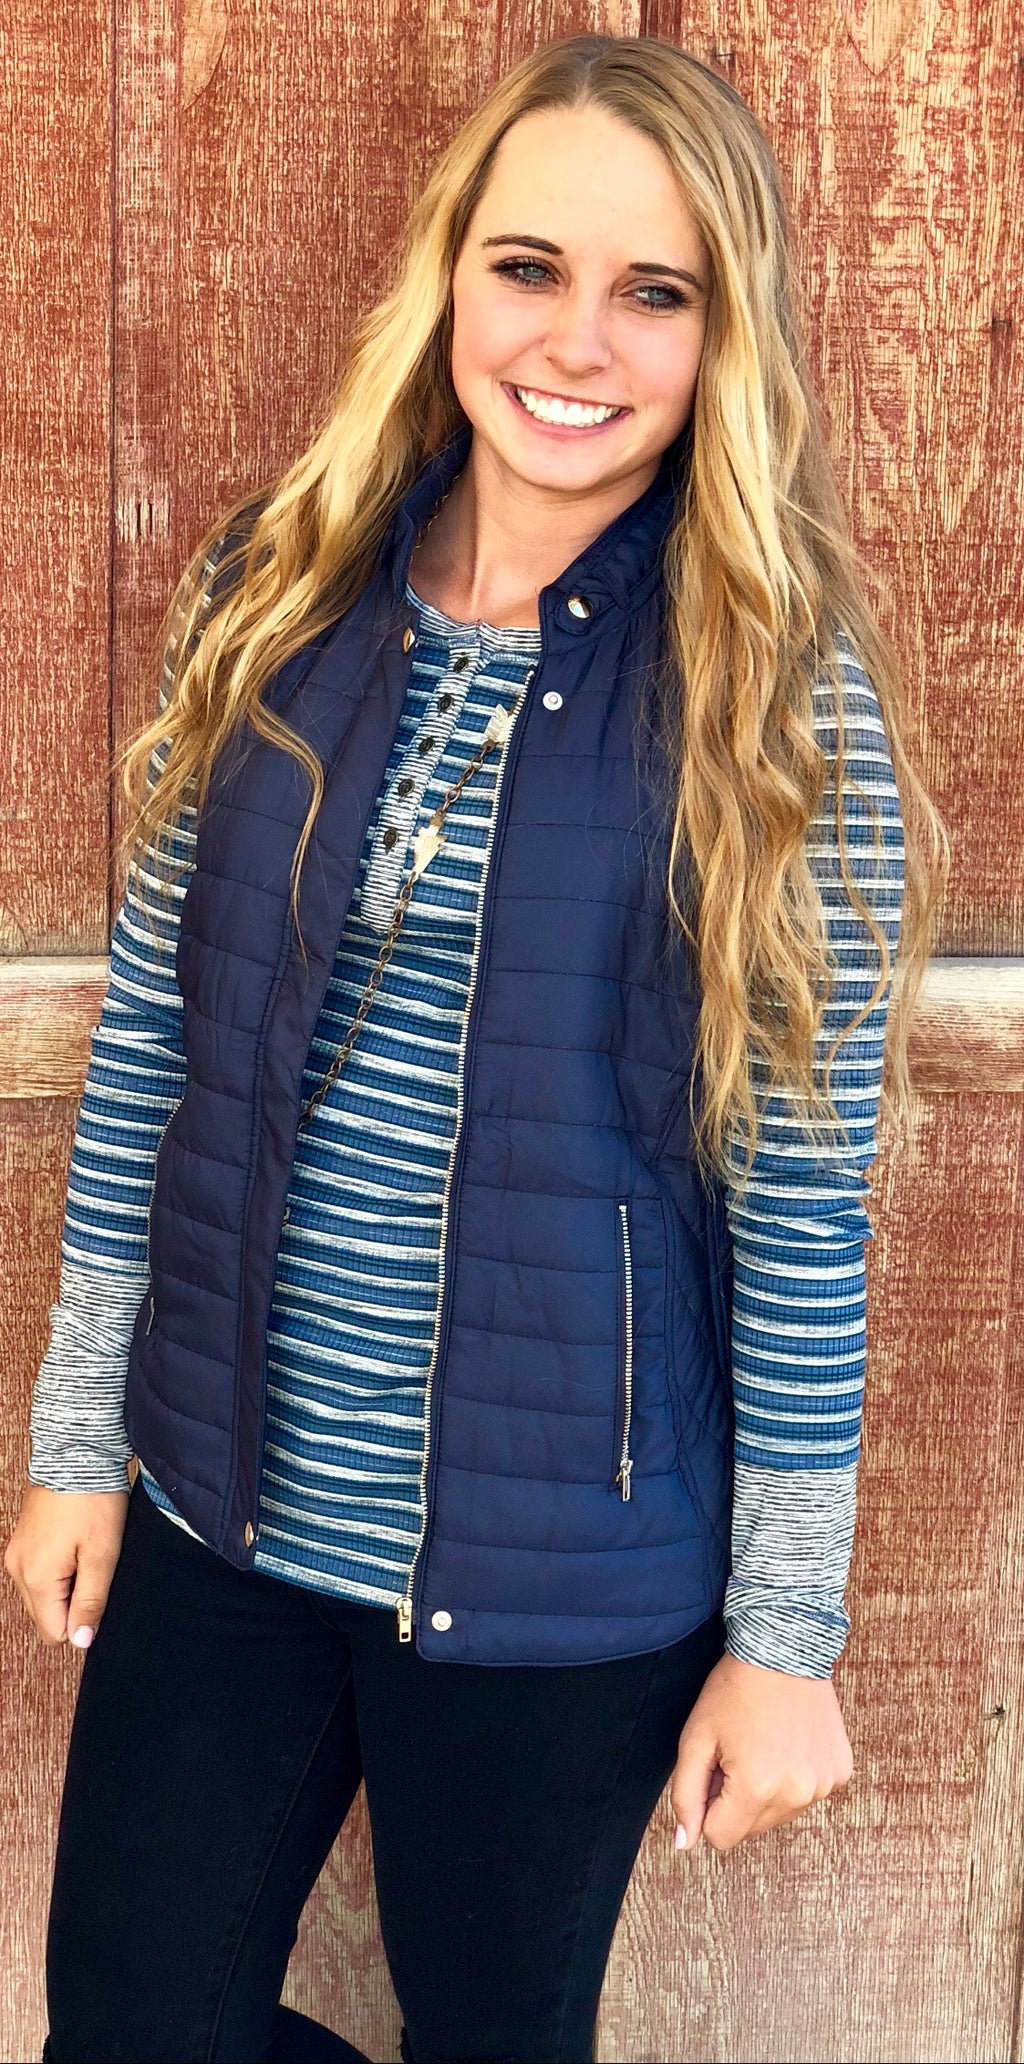 The Kania Blue Stripe Henley Top